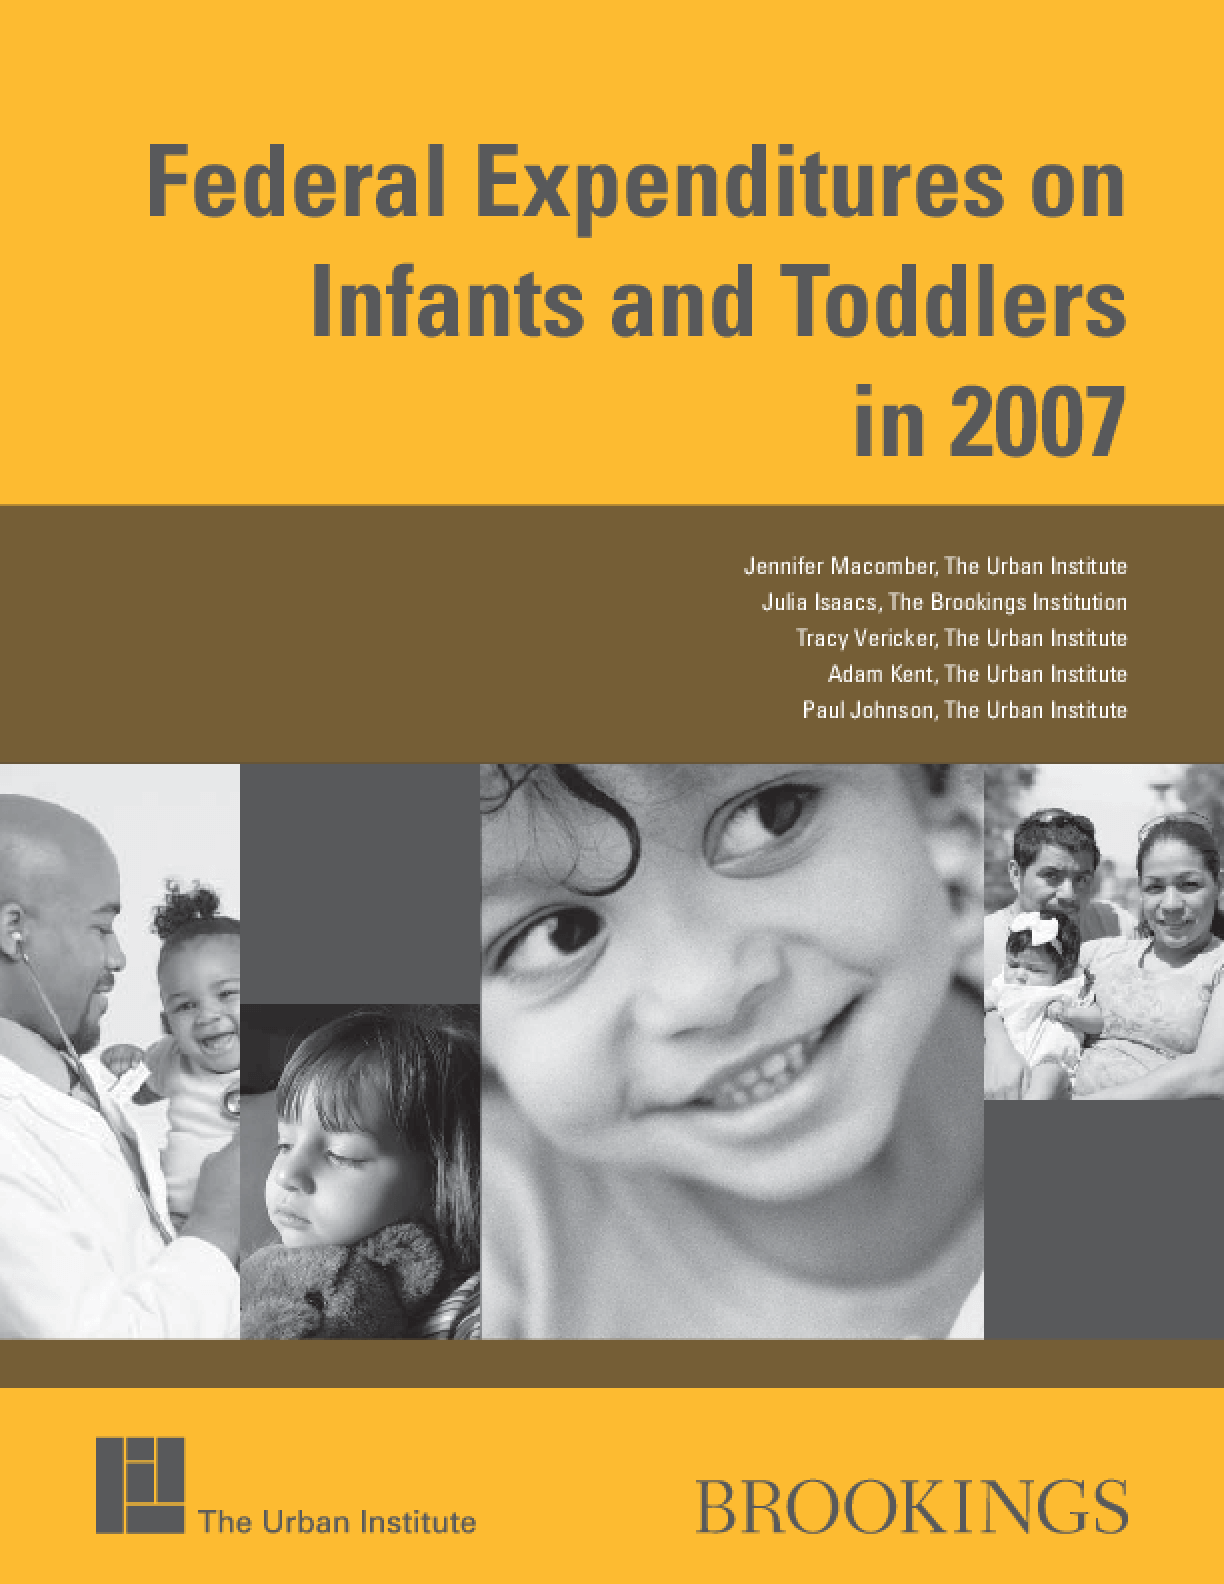 Federal Expenditures on Infants and Toddlers in 2007